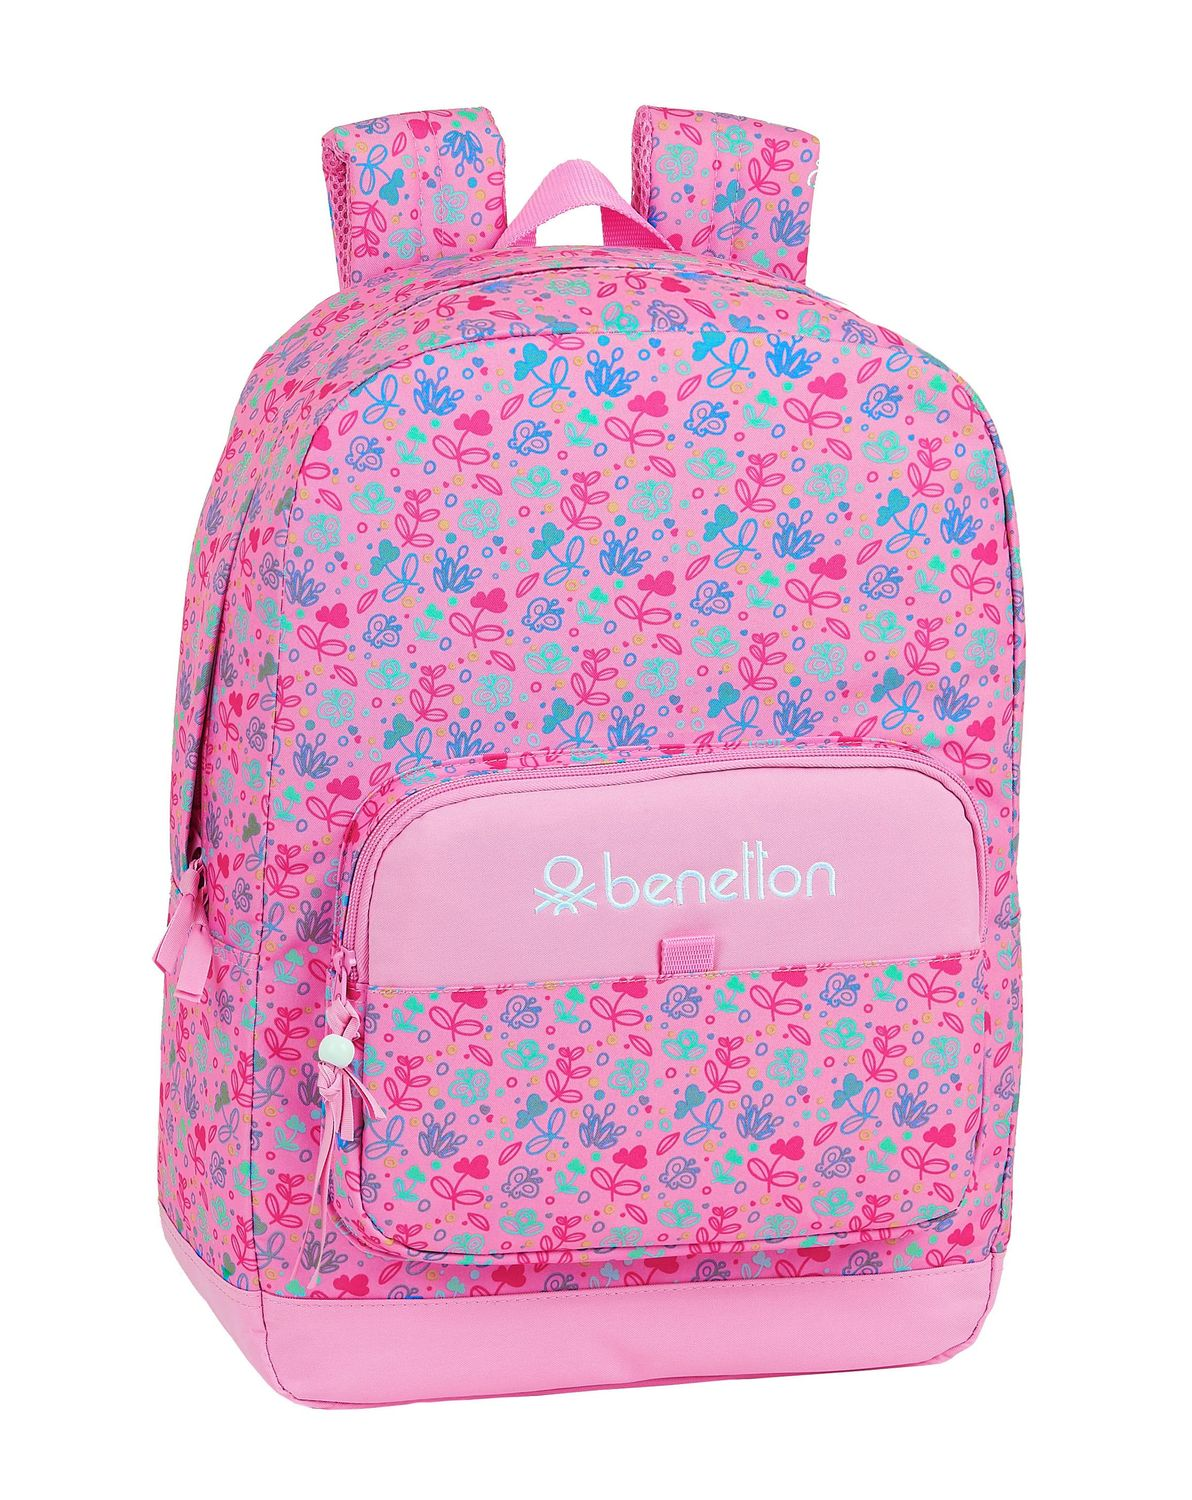 BENETTON Pink BUTTERFLIES Backpack Rucksack 43 cm – image 1